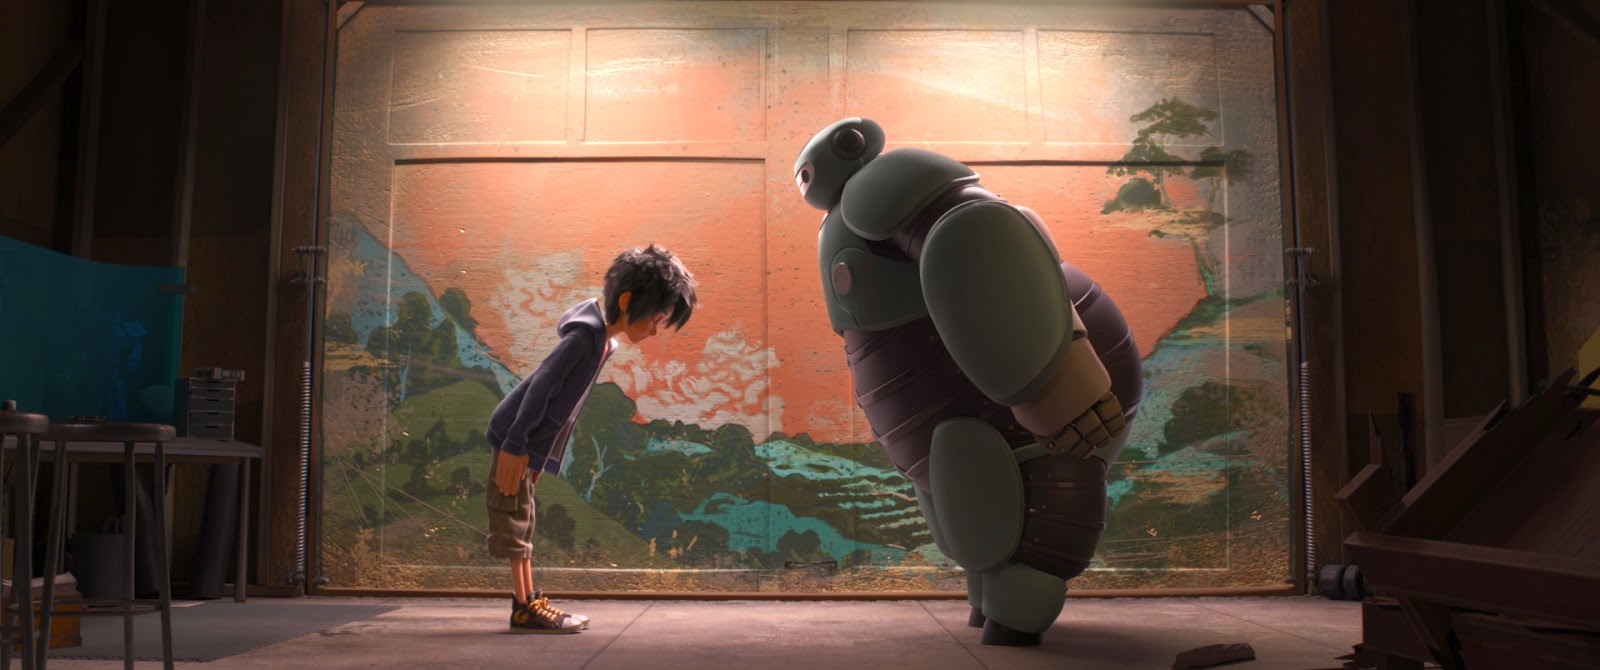 Big Hero 6 Disney movie animatedfilmreviews.filminspector.com